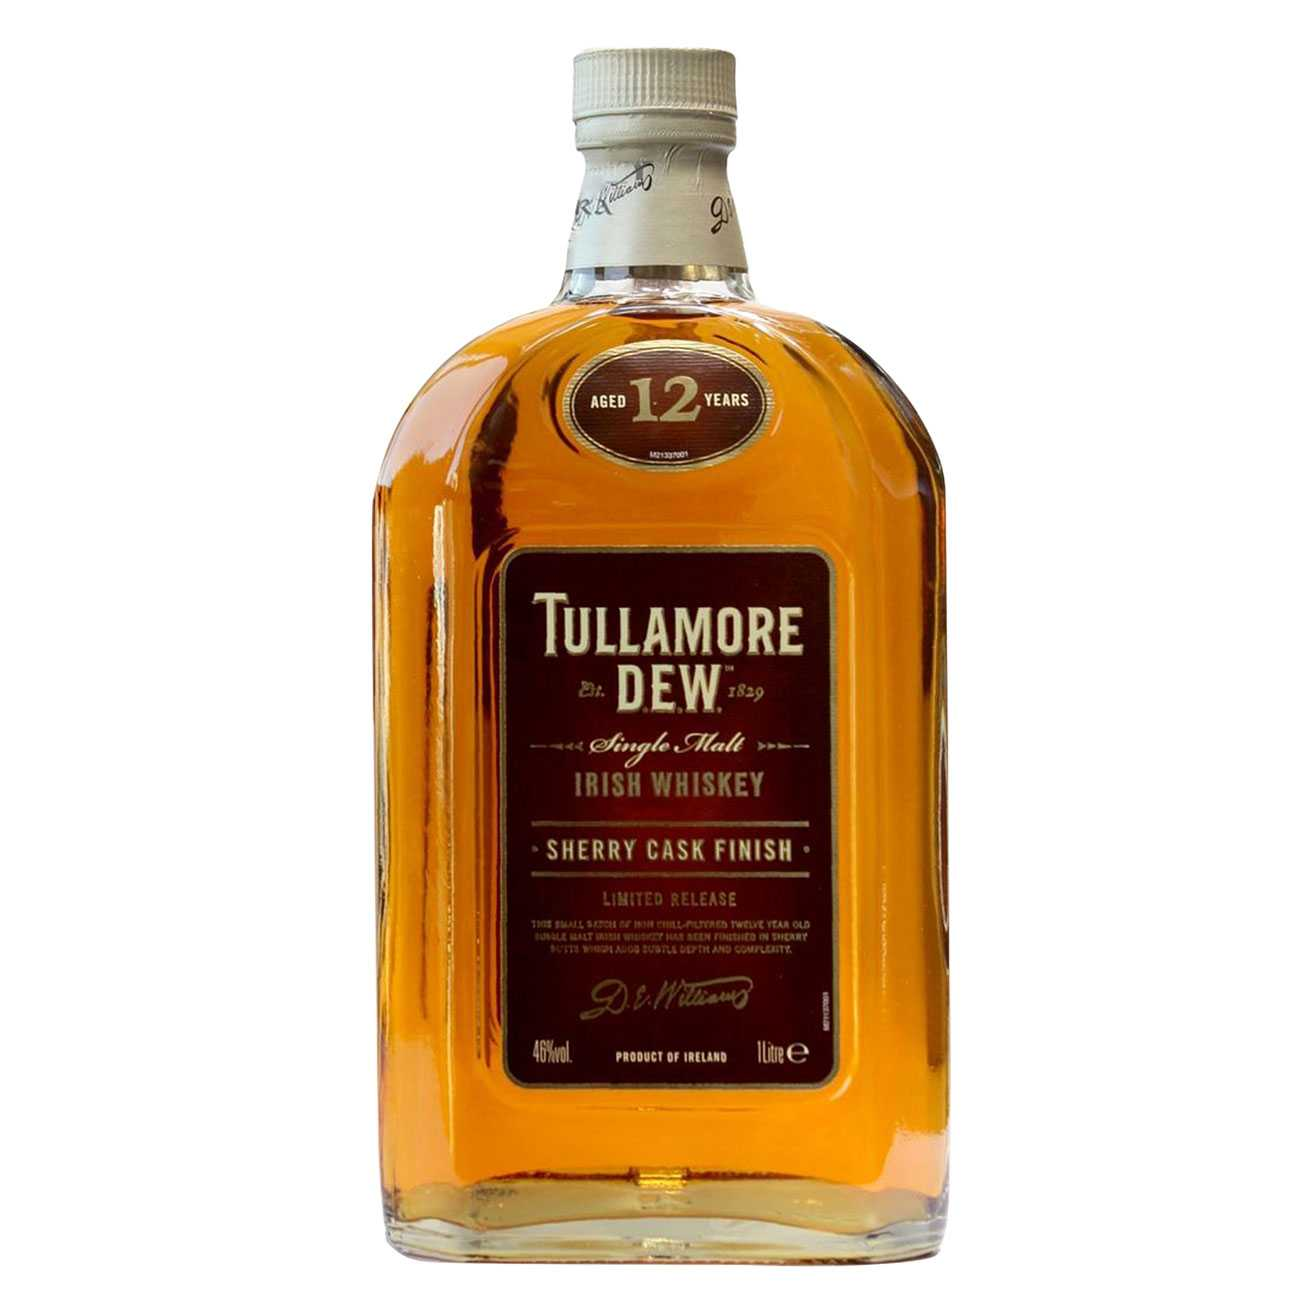 Whisky irlandez, 12 YEAR OLD SHERRY CASK FINISH 1000 ML, Tullamore Dew